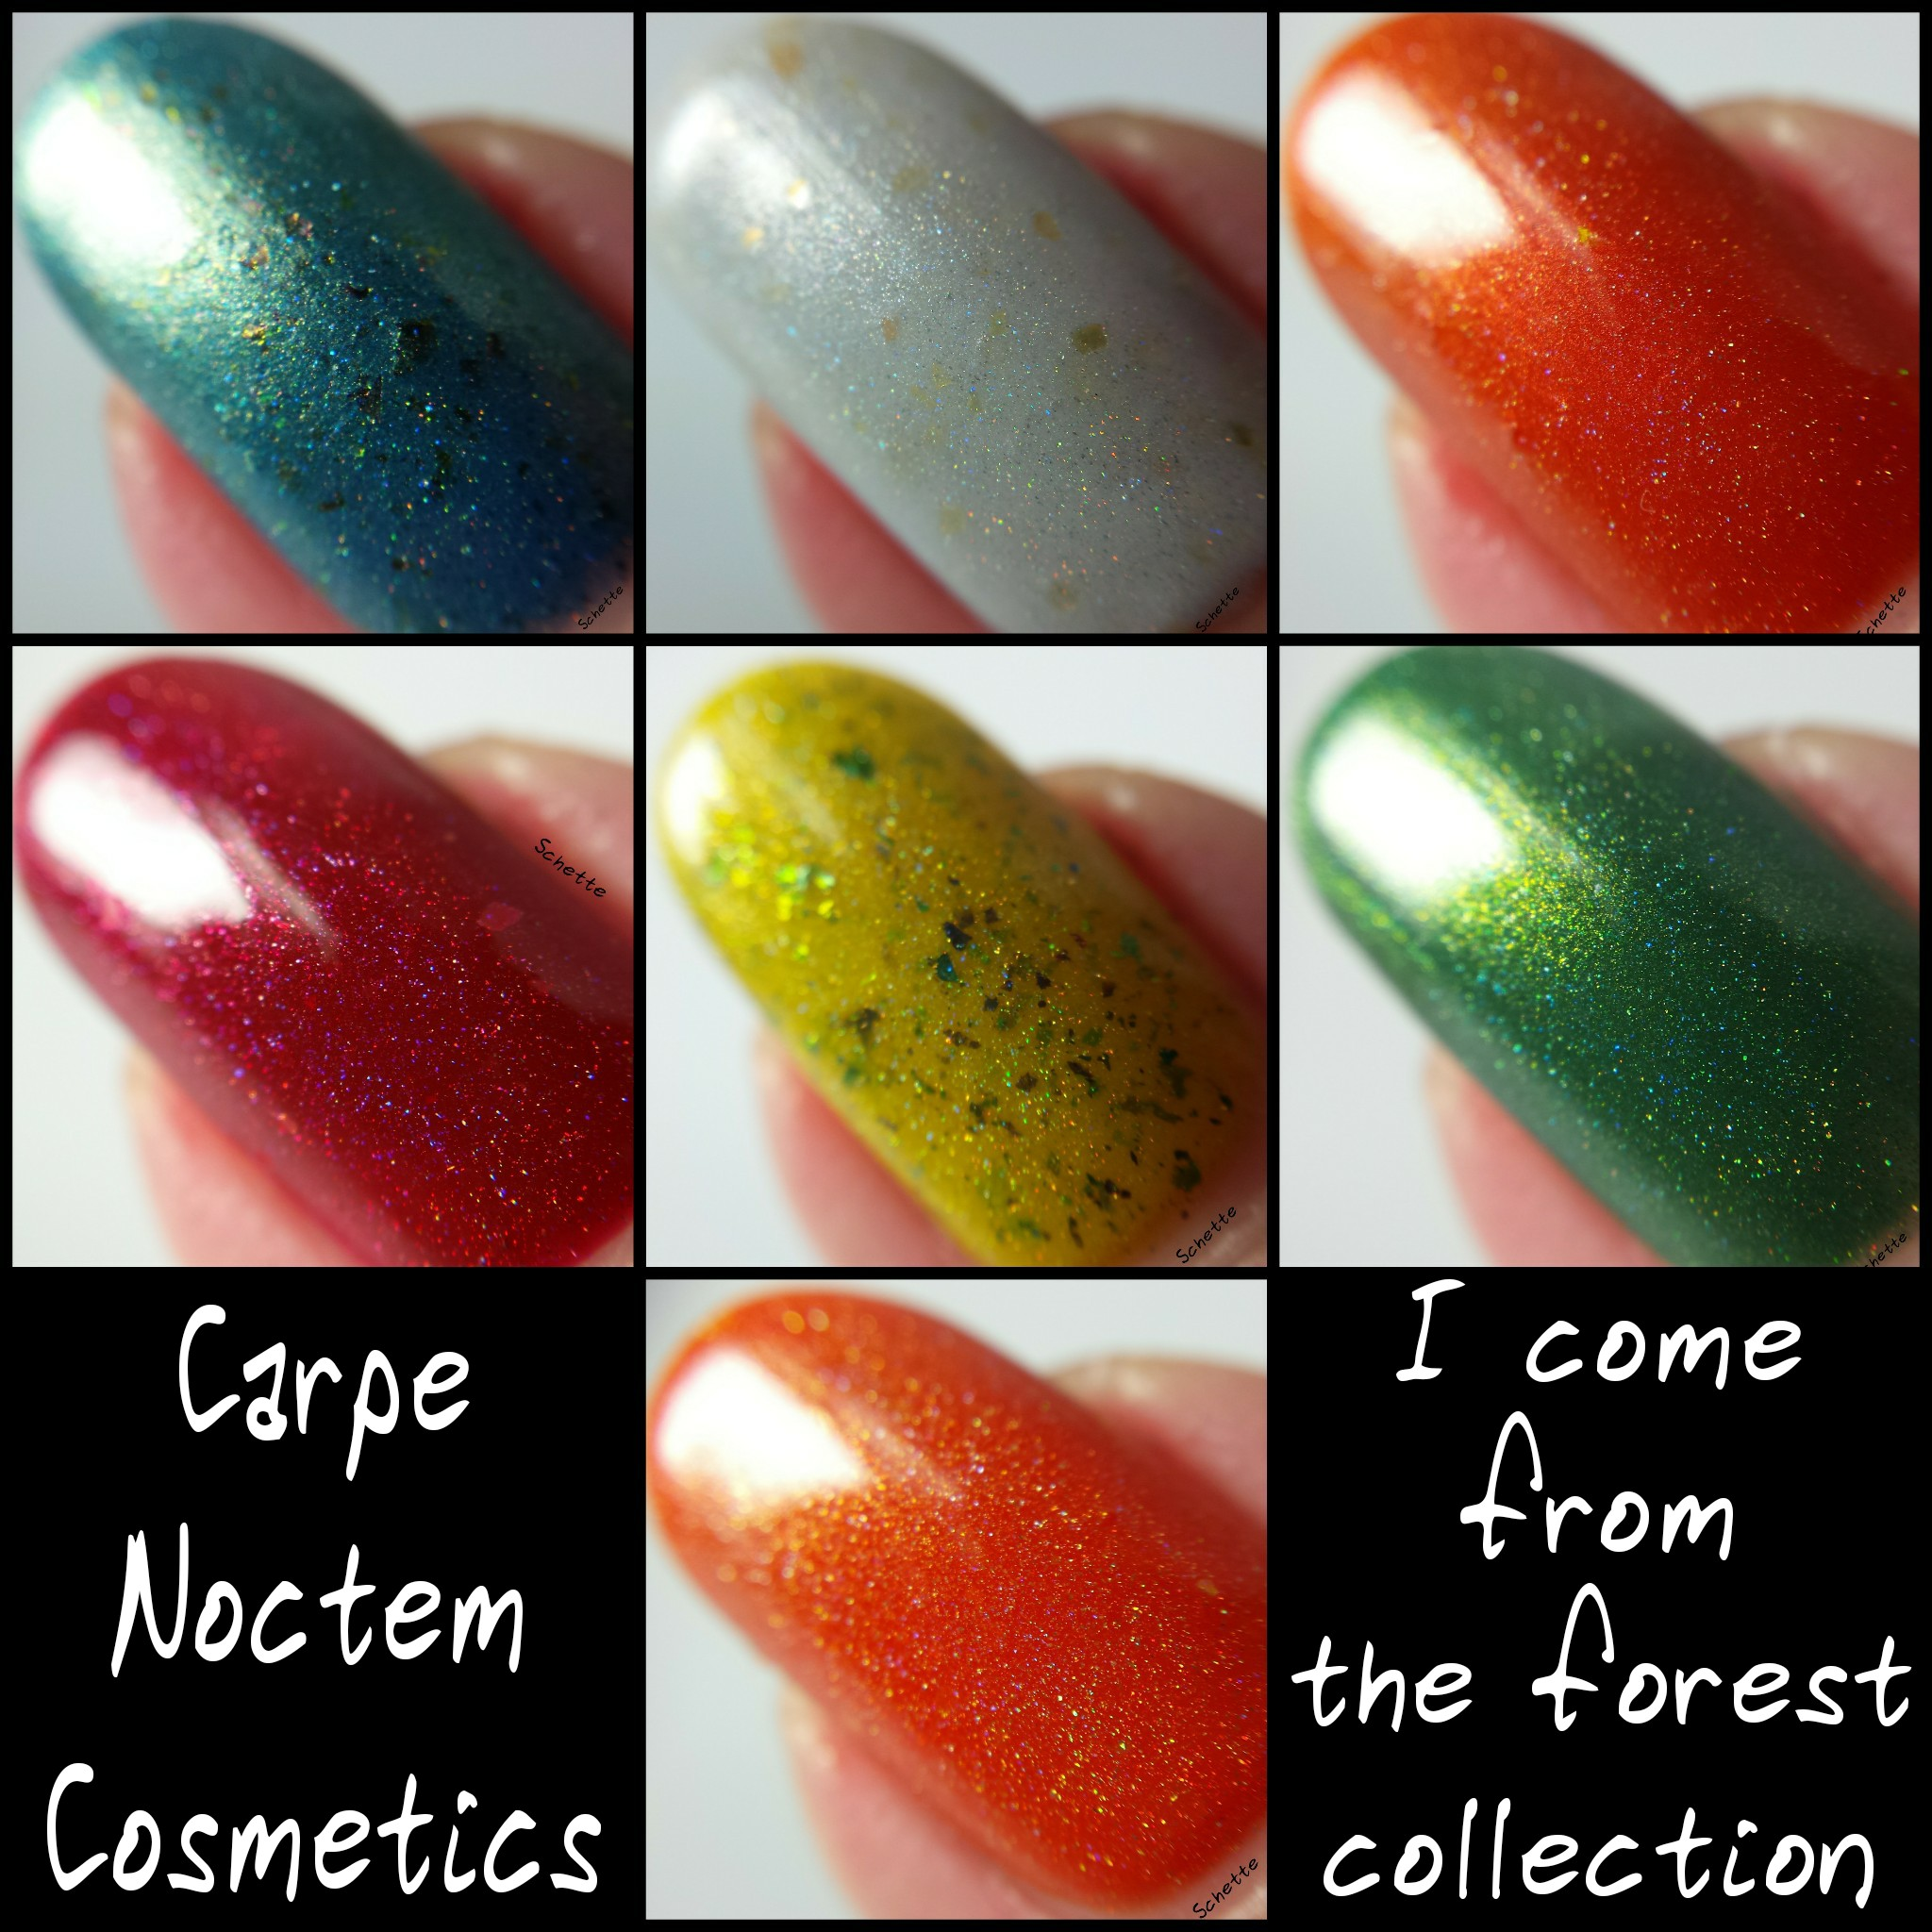 Carpe Noctem Cosmetics - I come from the Forest - Part 2